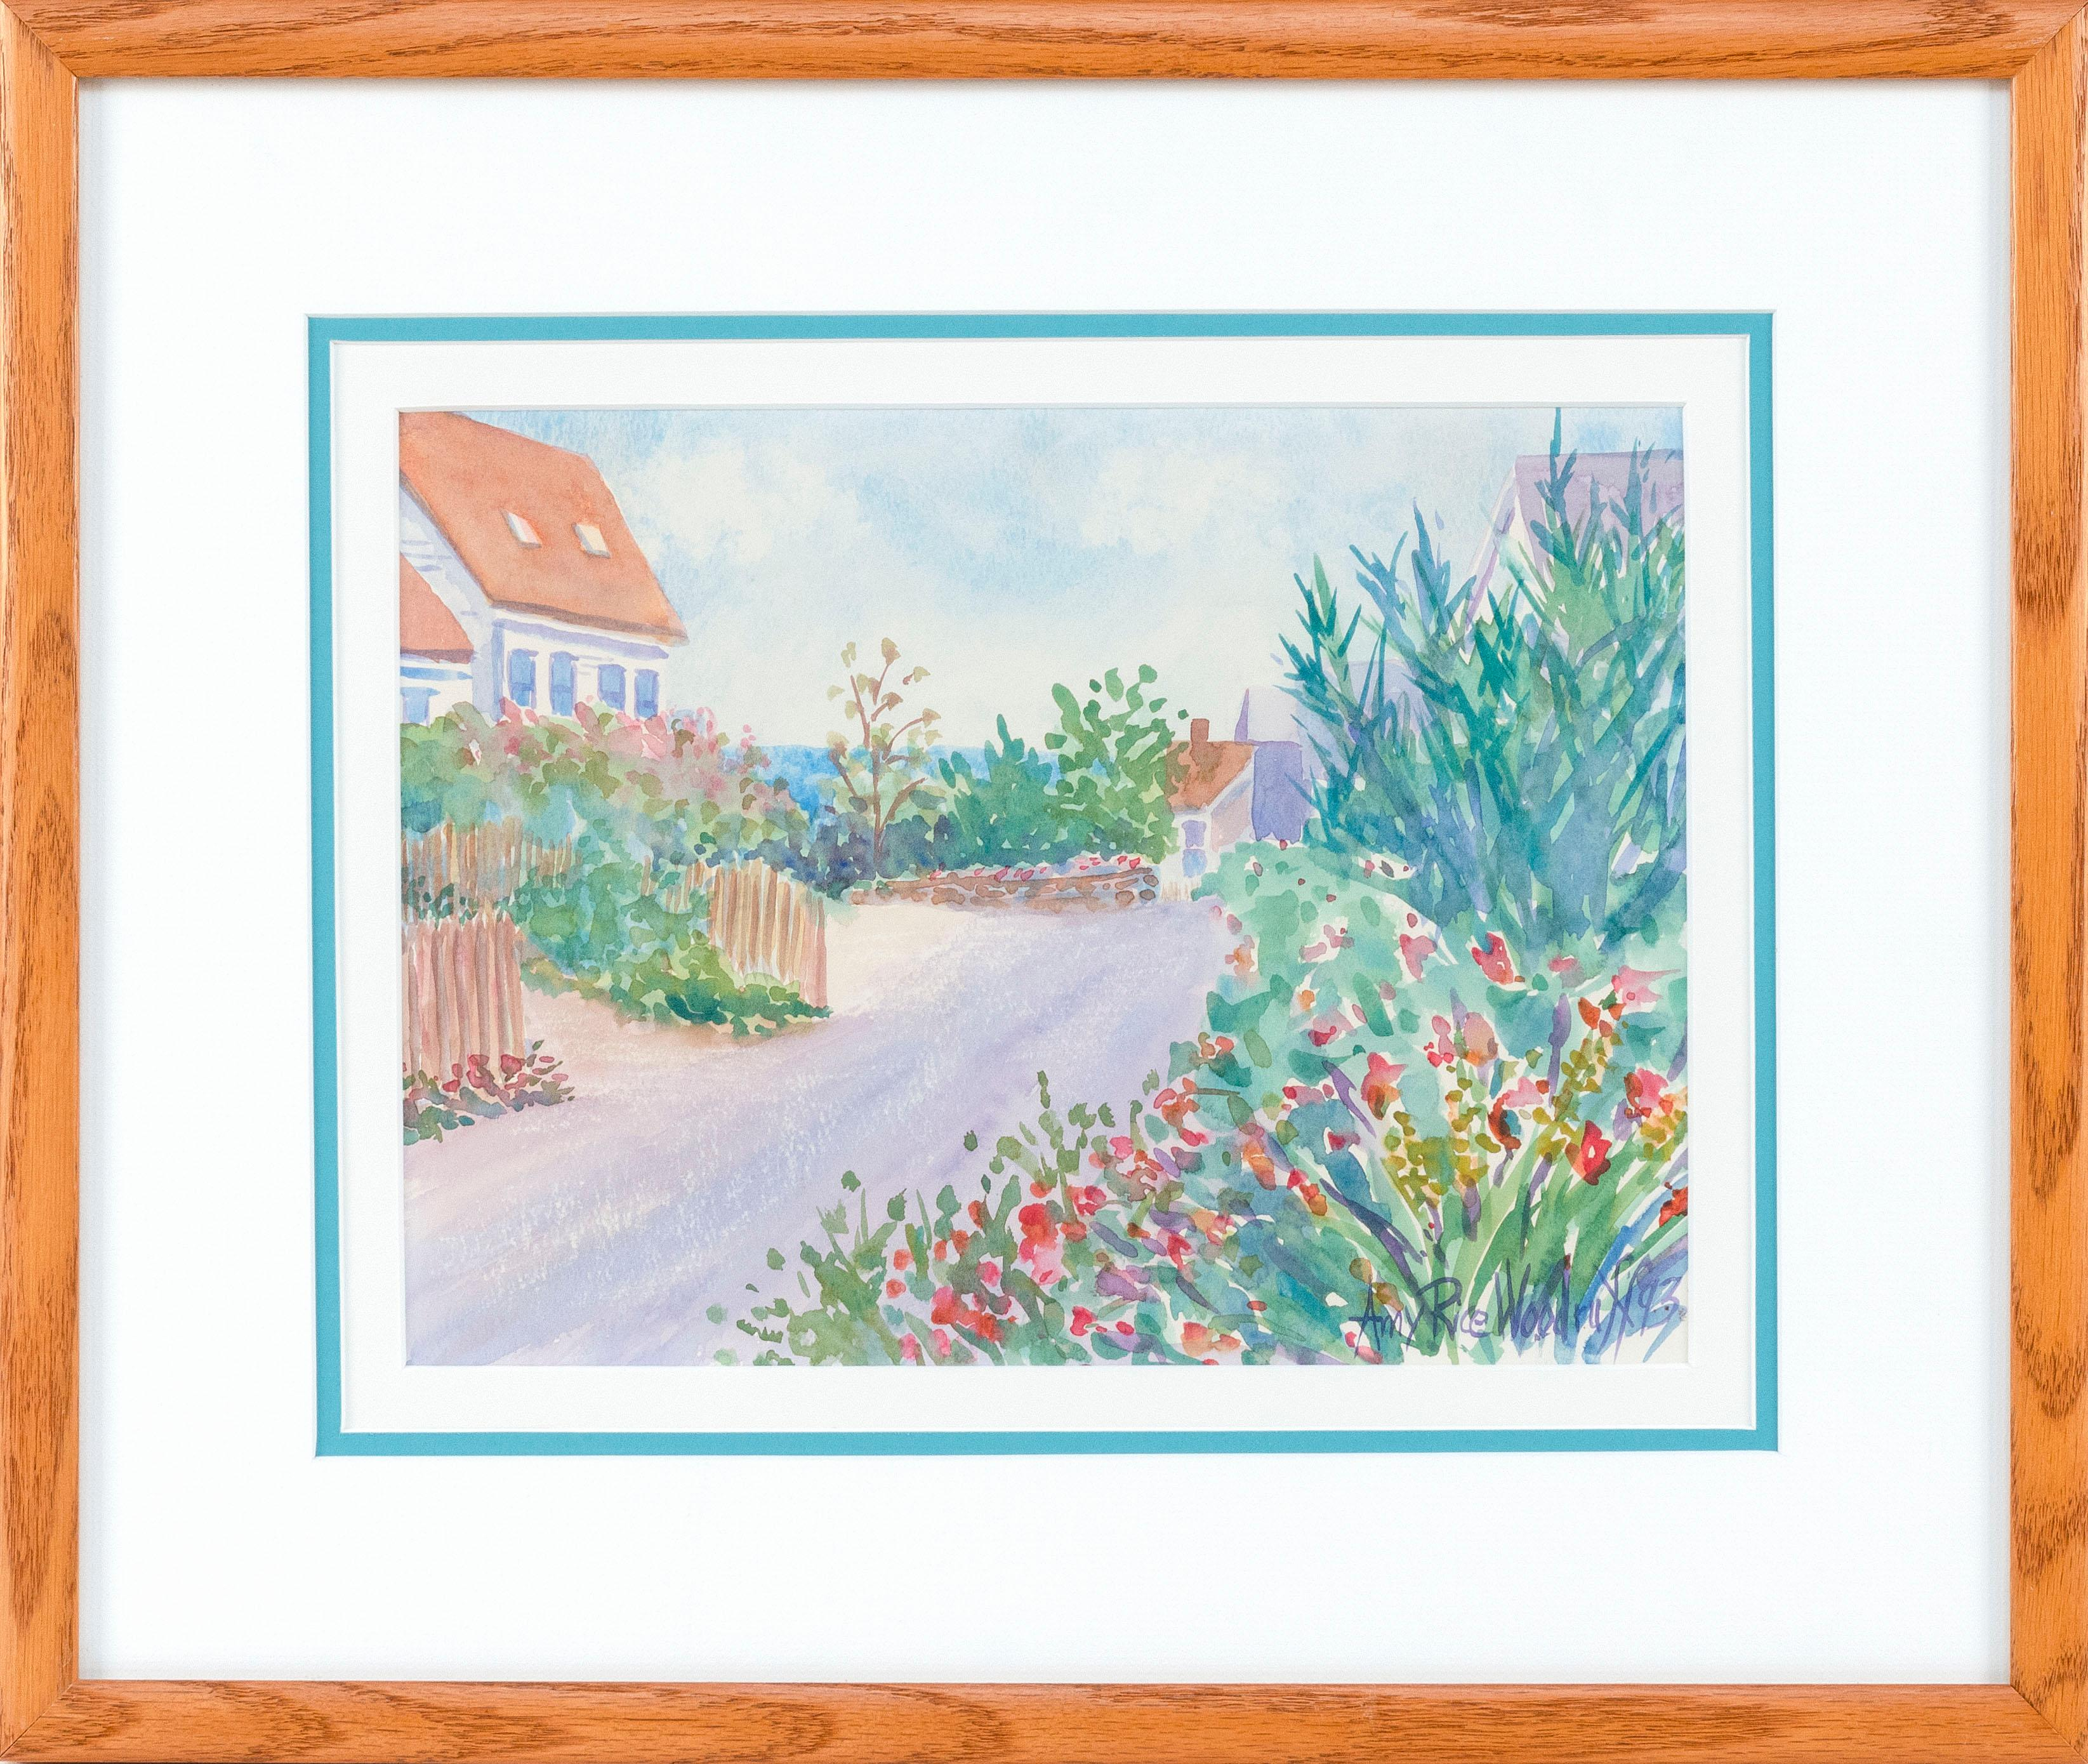 """AMY RICE WOODRUFF , Massachusetts, Contemporary, Seaside cottages., Signed and dated lower right """"Amy Rice Woodruff 93""""., Watercolor on paper, 9"""" x 12"""" sight. Framed 17"""" x 19""""."""